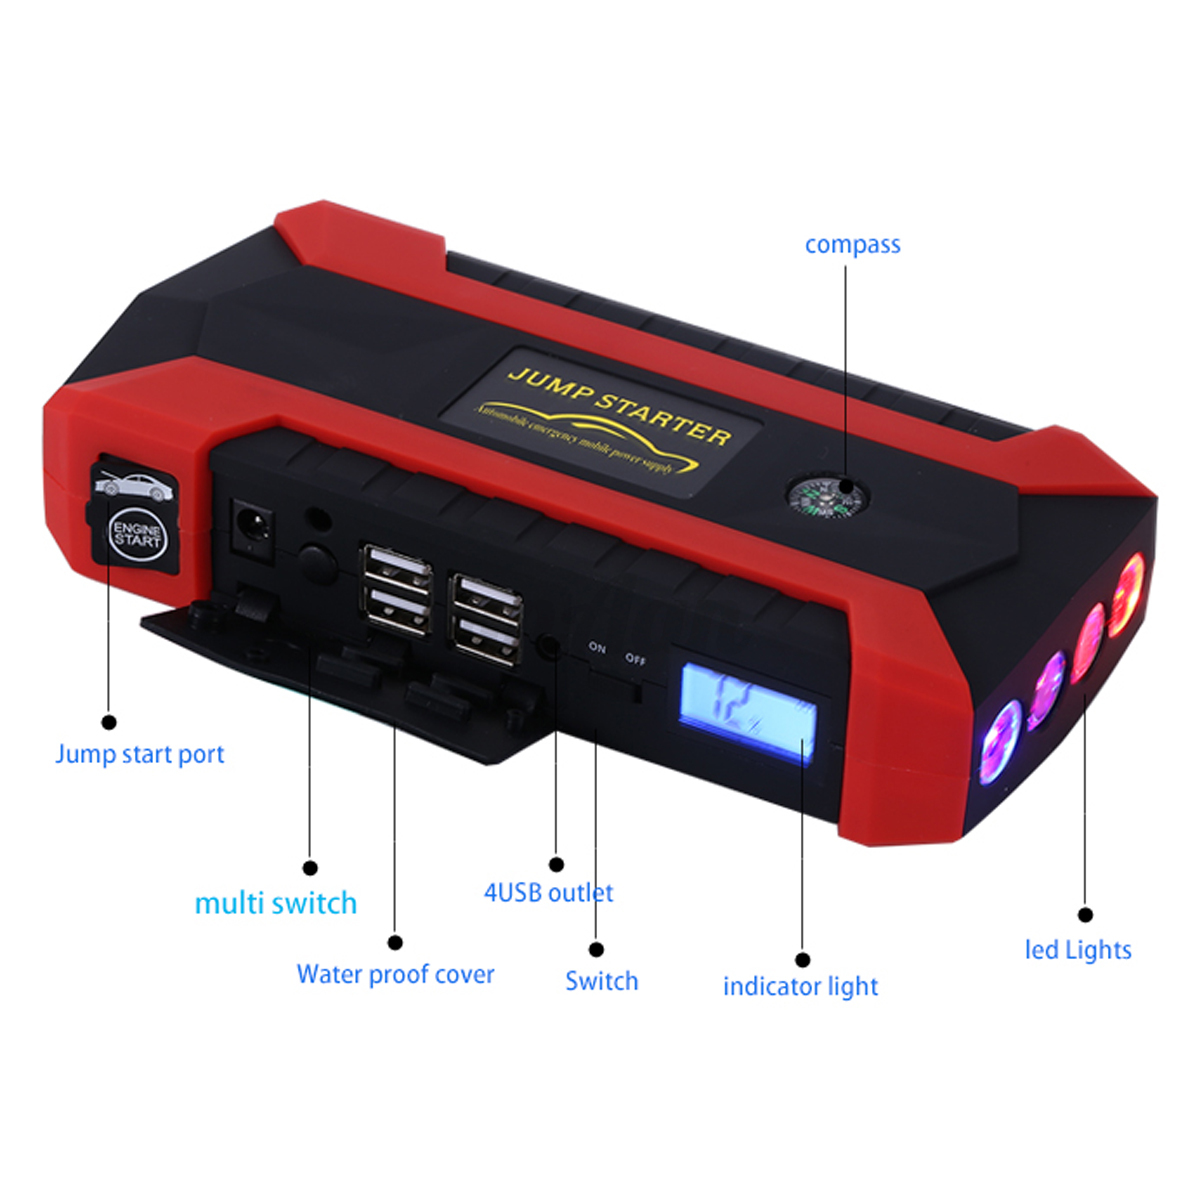 12v starterbatterie f r fiat wm diagram of coronary arteries and branches 89800mah 4 usb car jump starter pack booster charger